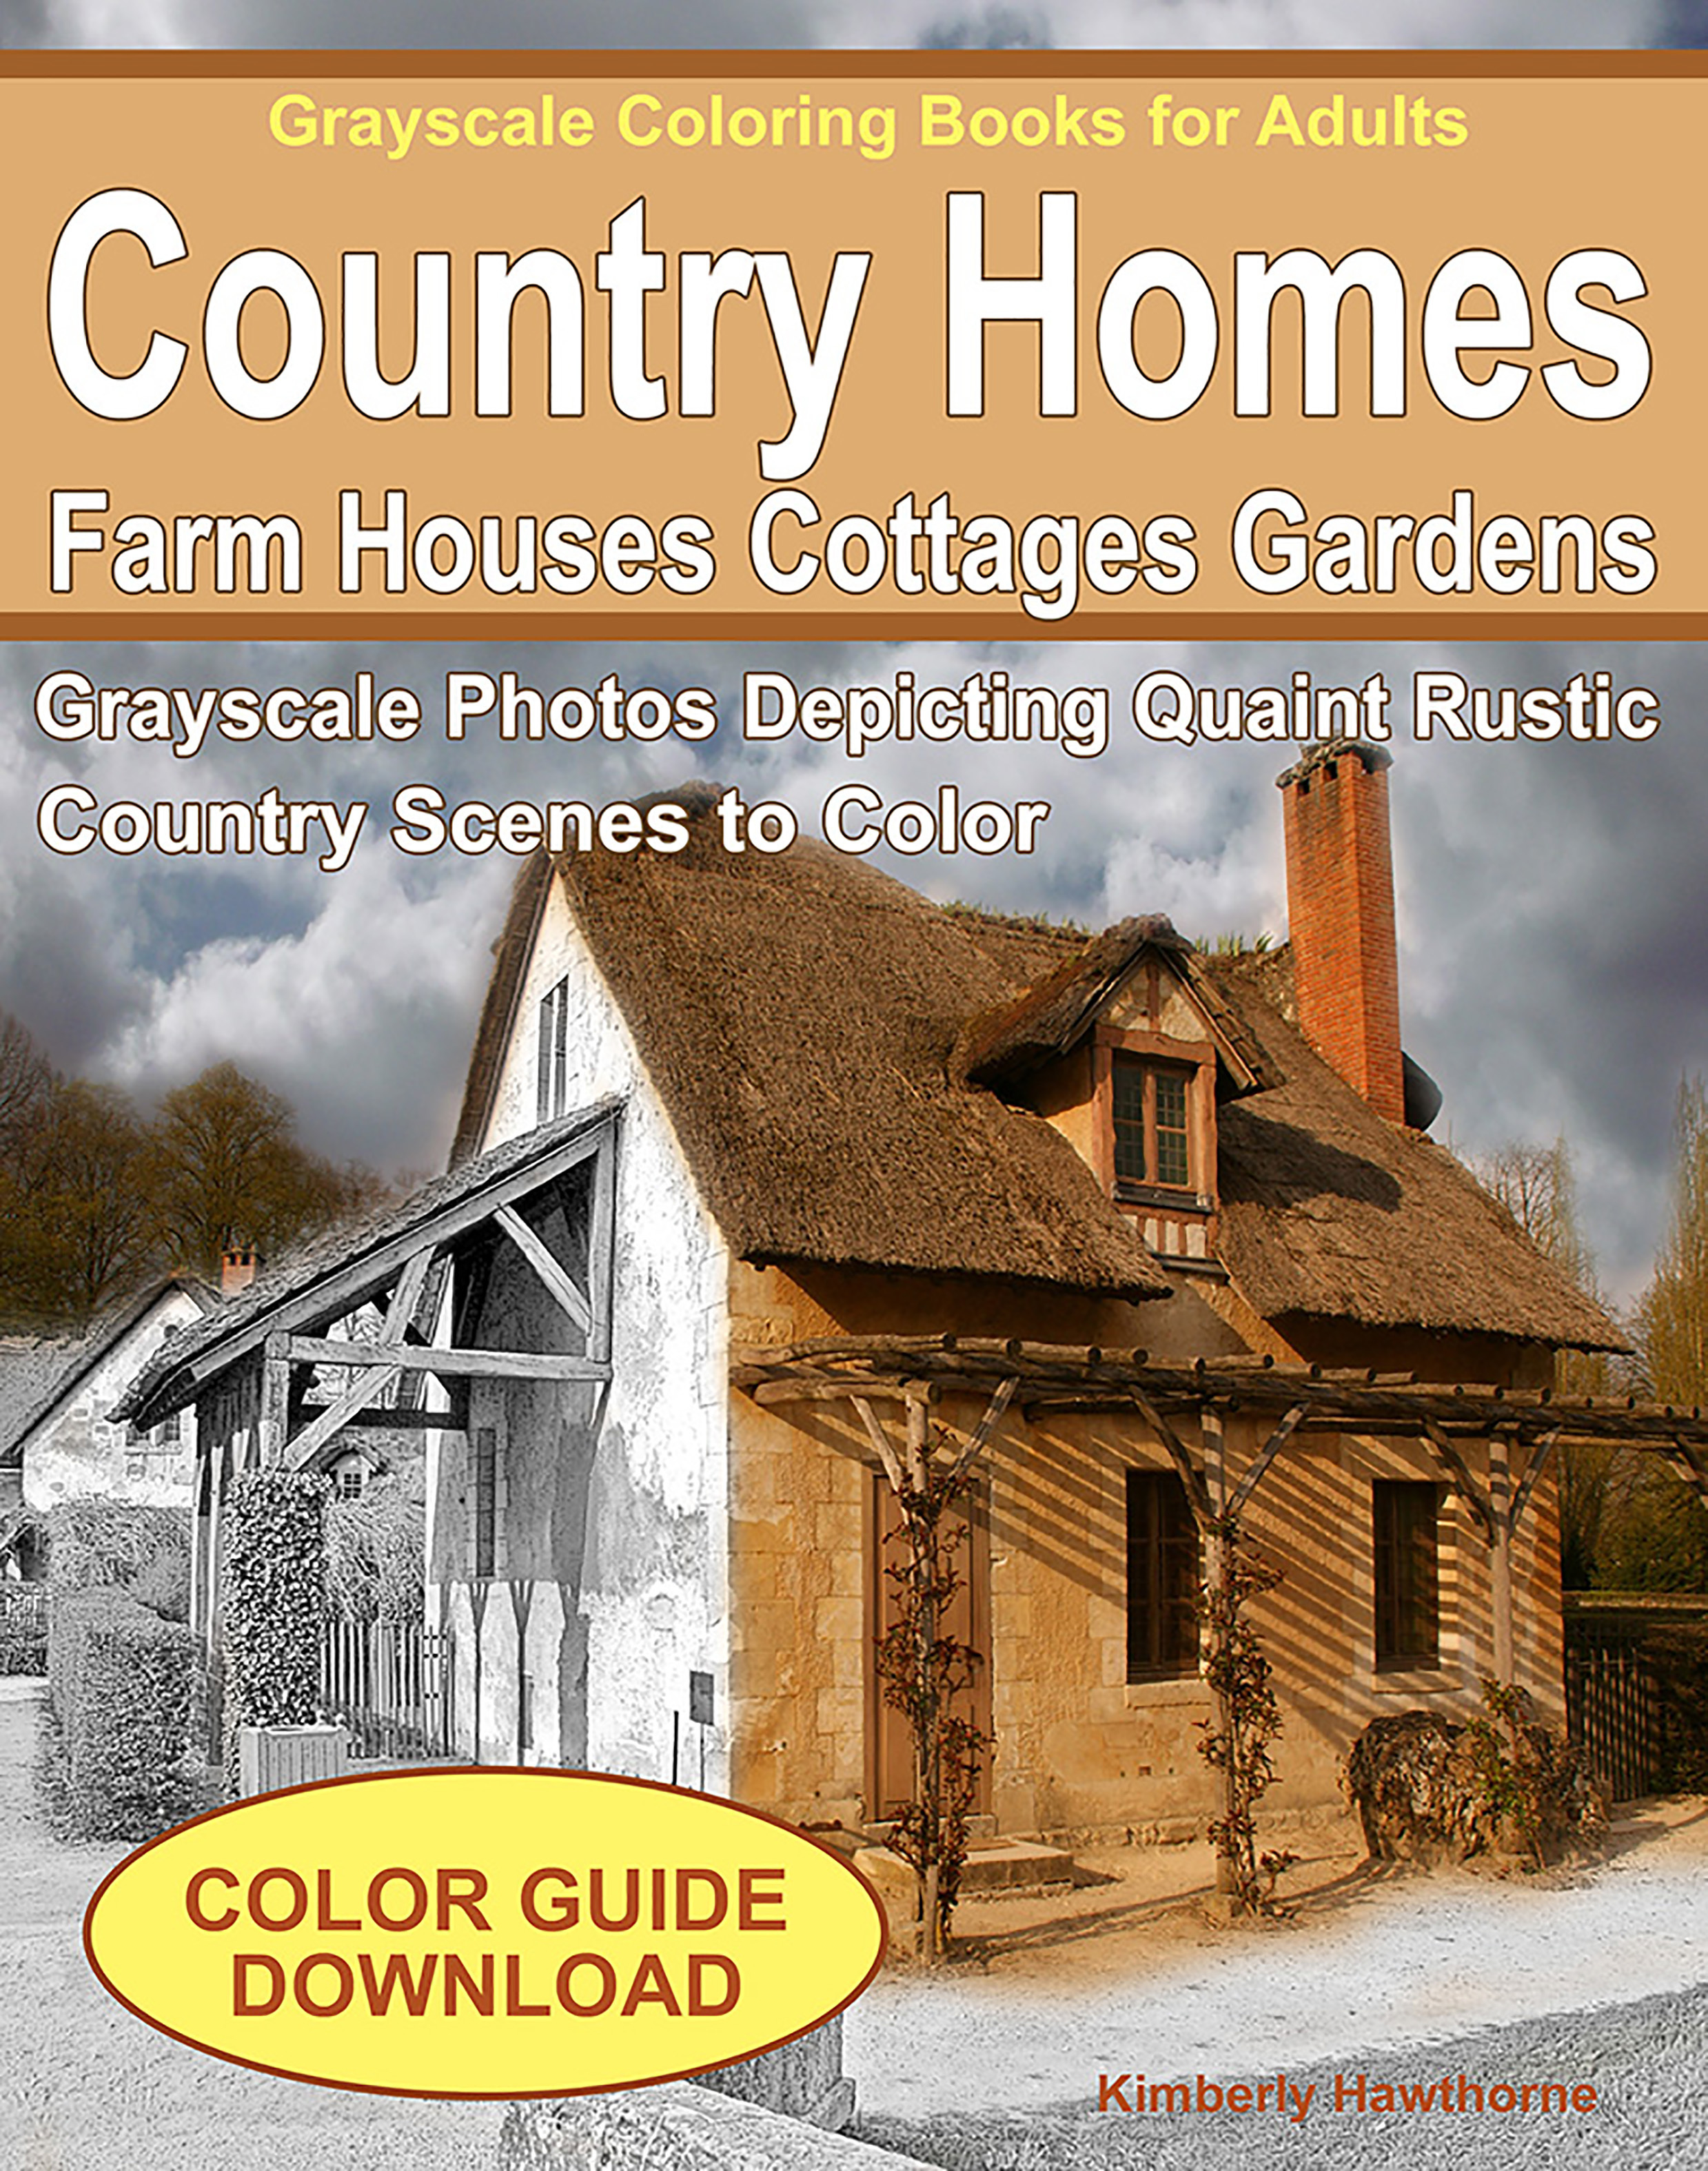 Coloring book real estate - Coloring Books For Children